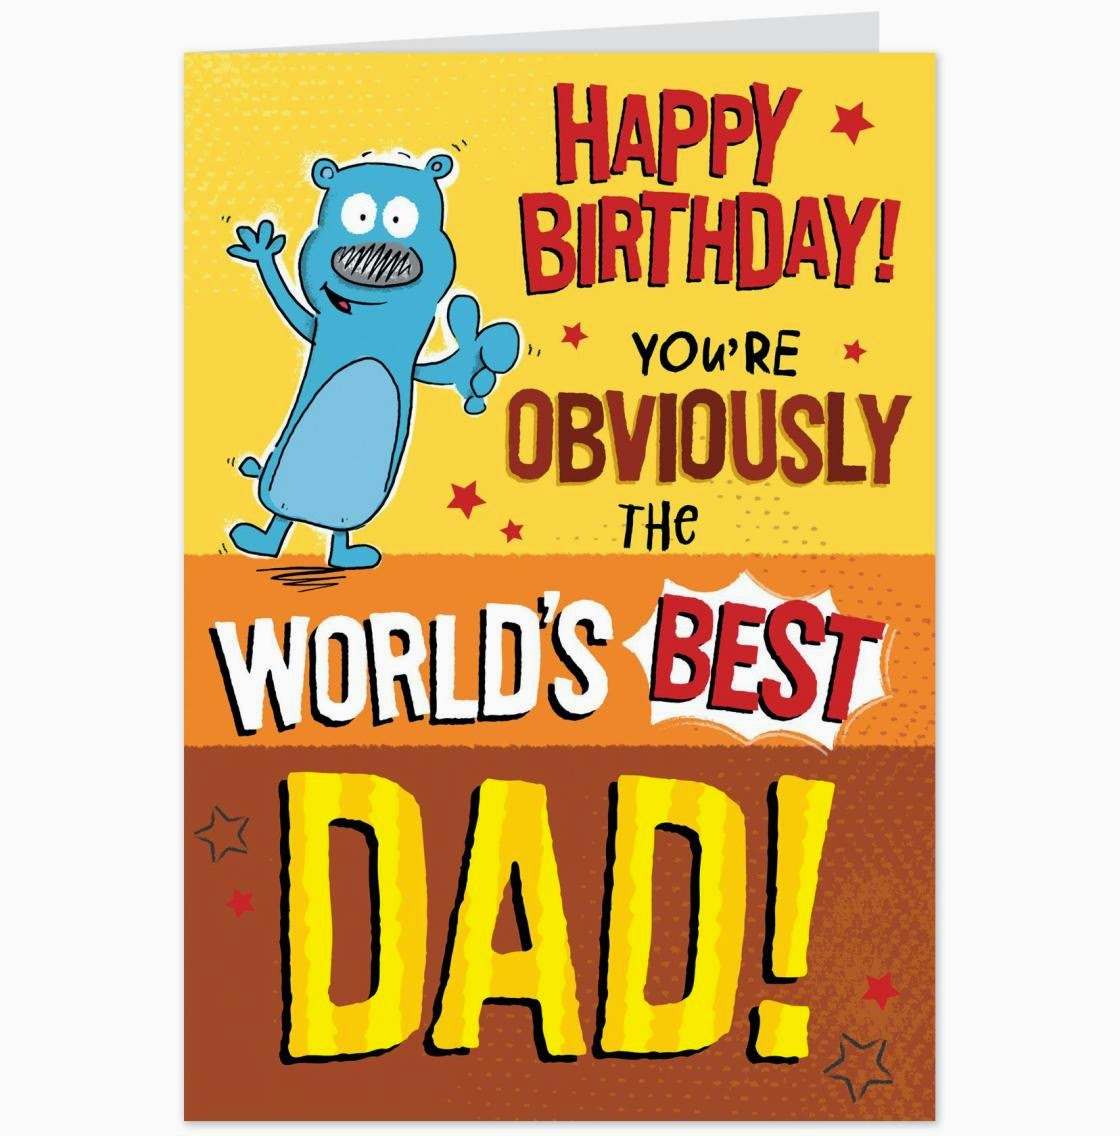 Birthday quotes images and messages birthday images for dad birthday images for dad kristyandbryce Image collections